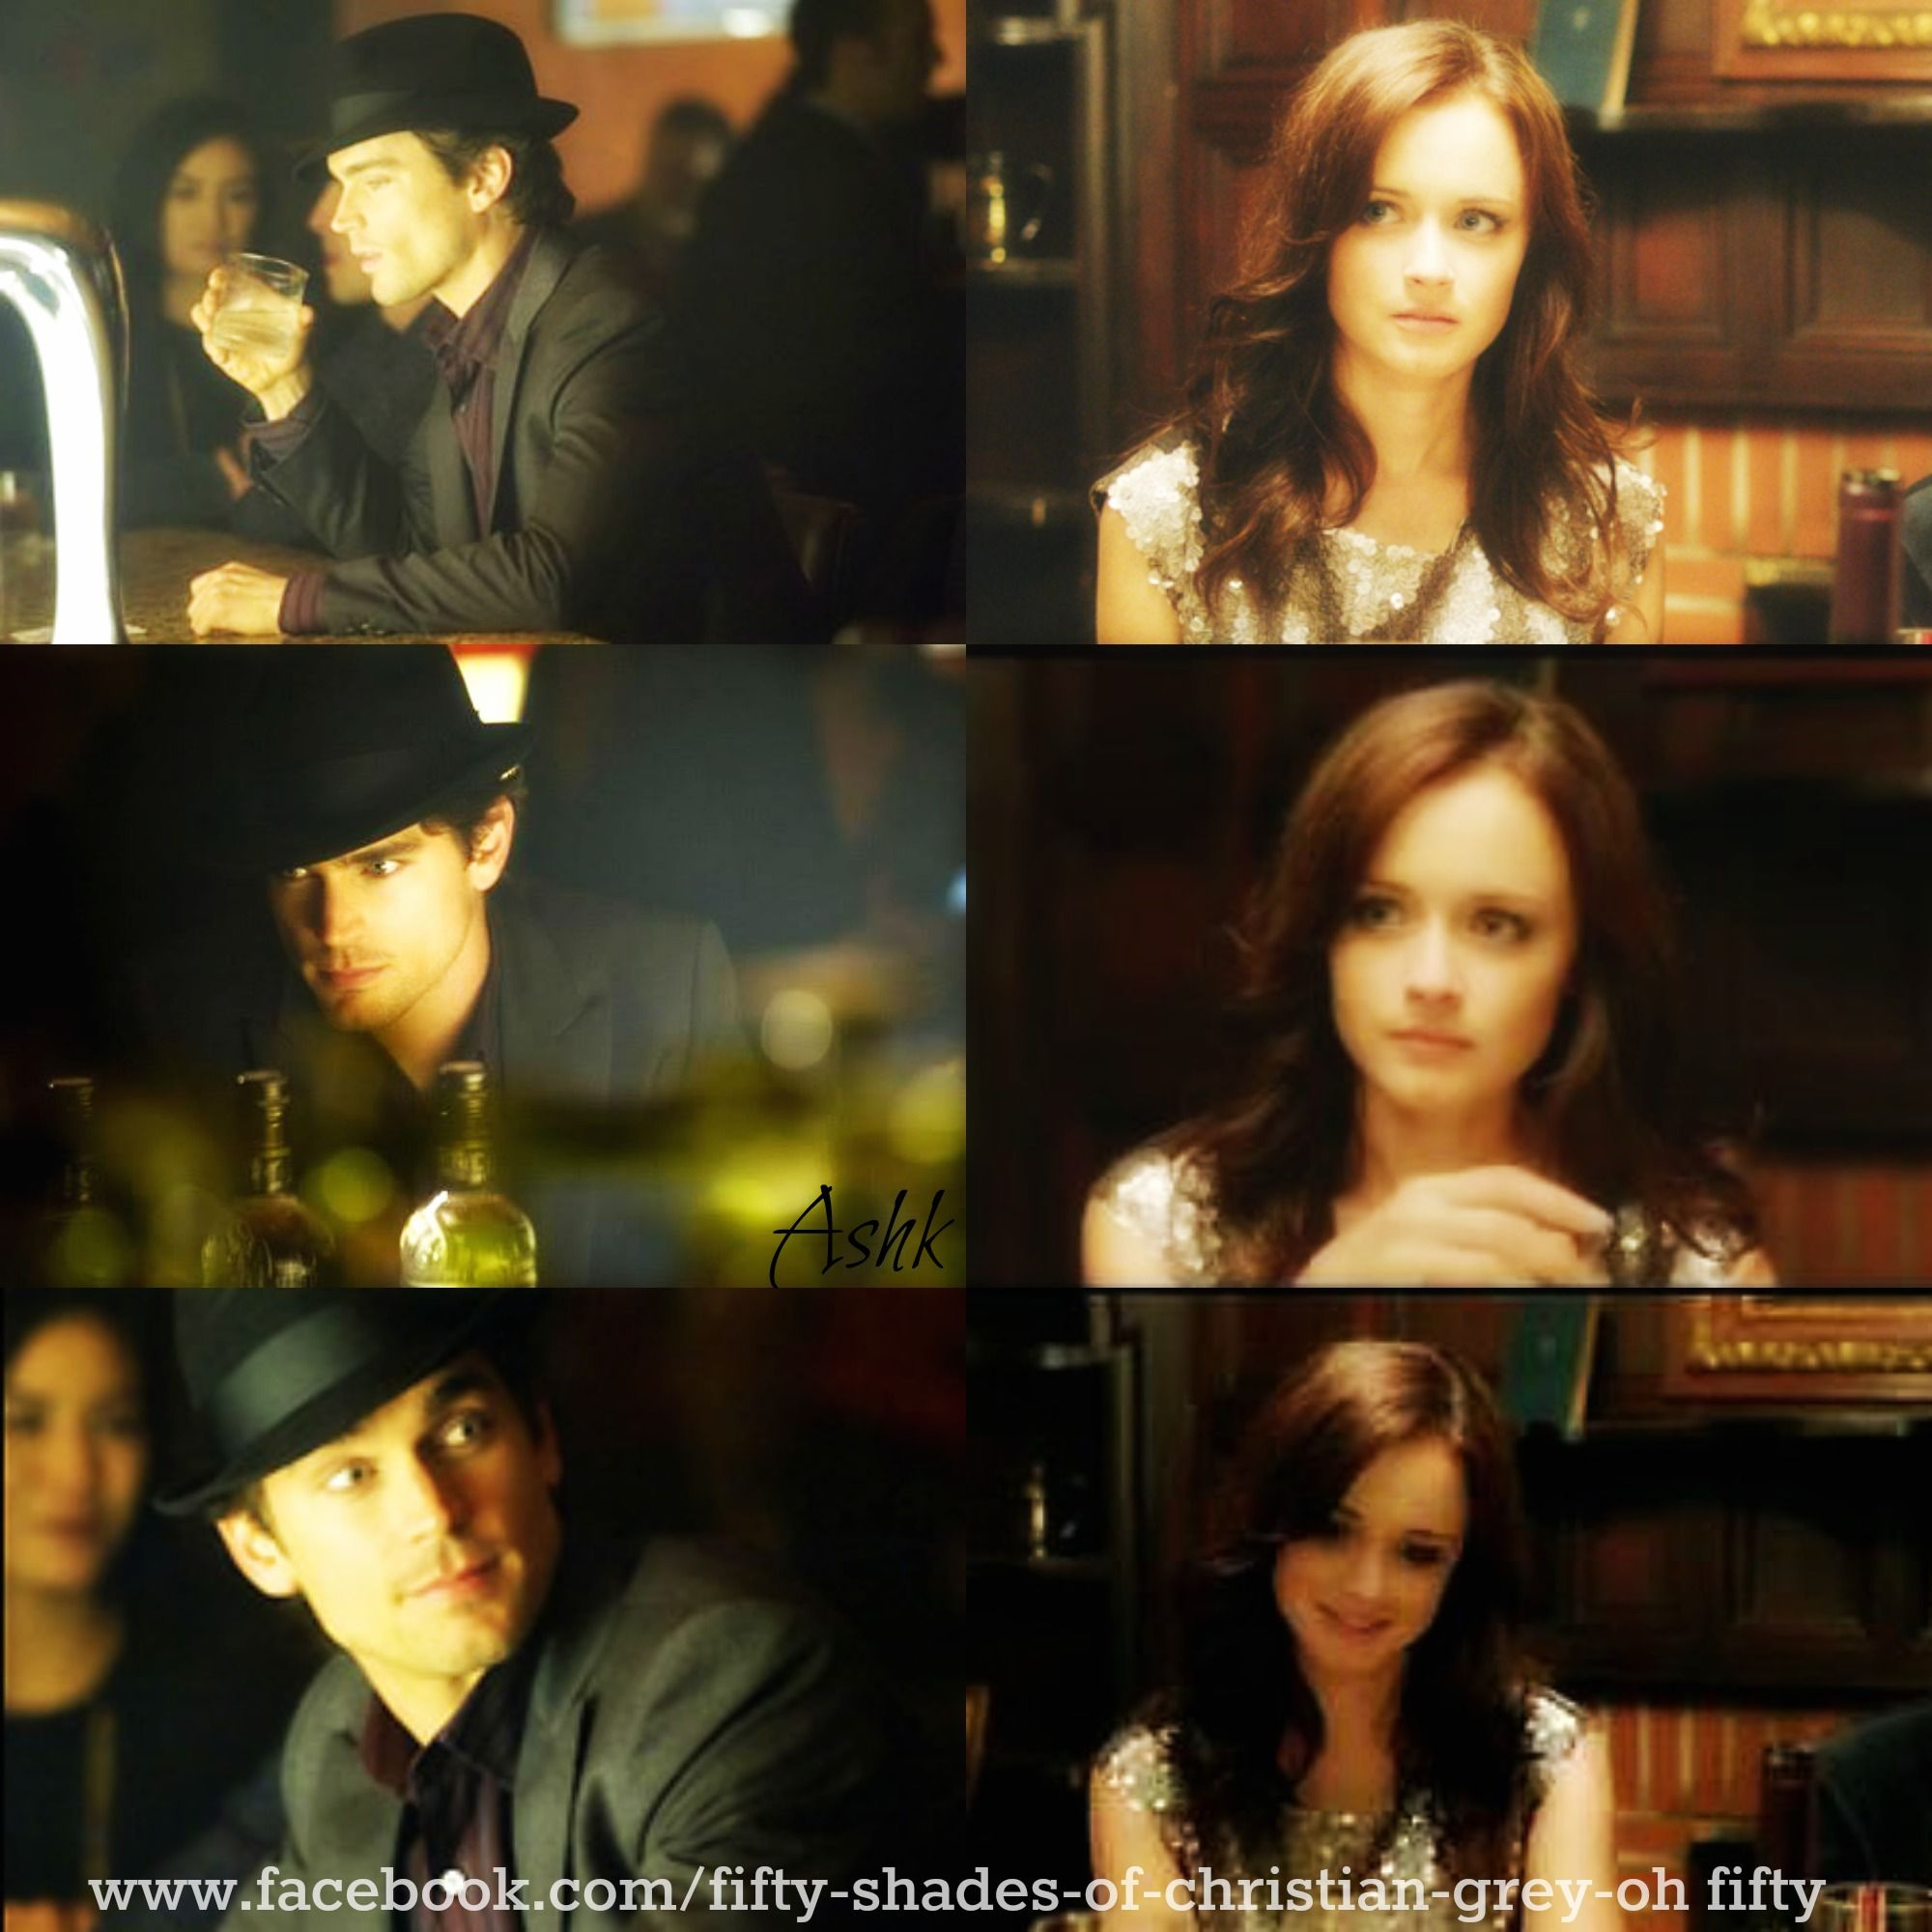 Matt Bomer And Alexis Bledel Perfect For Fifty Shades 3